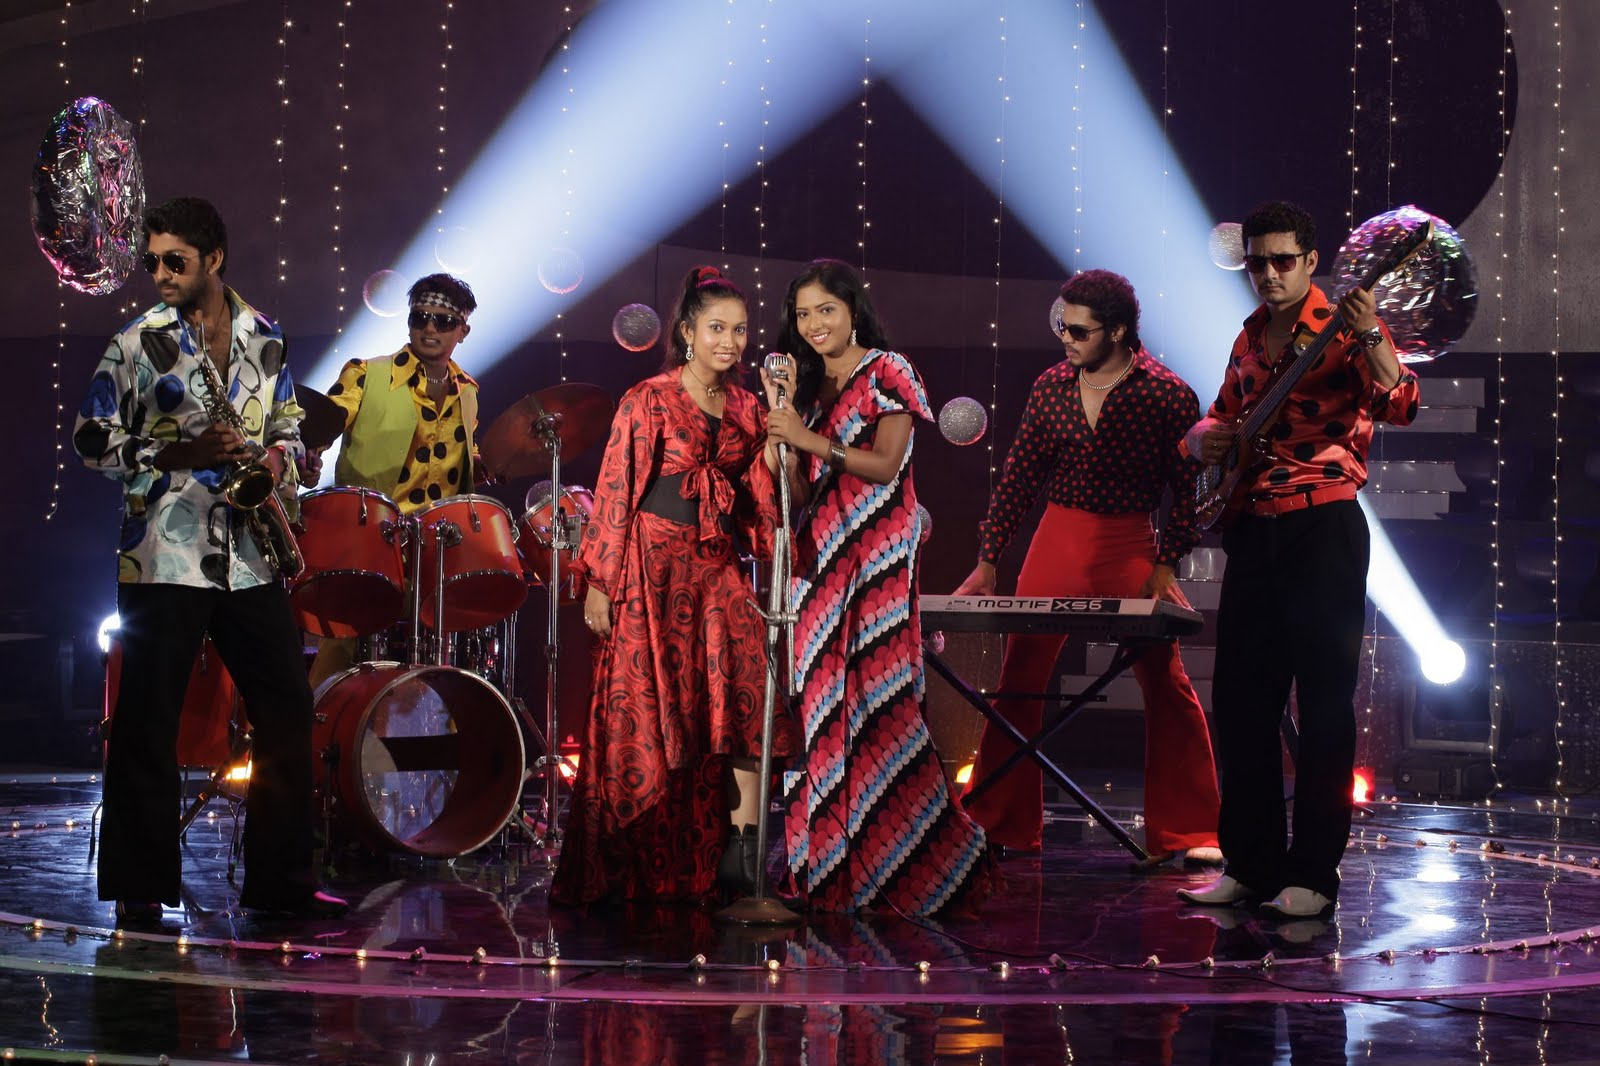 Super singer 9 episode 20 hotstar / Once upon a time season